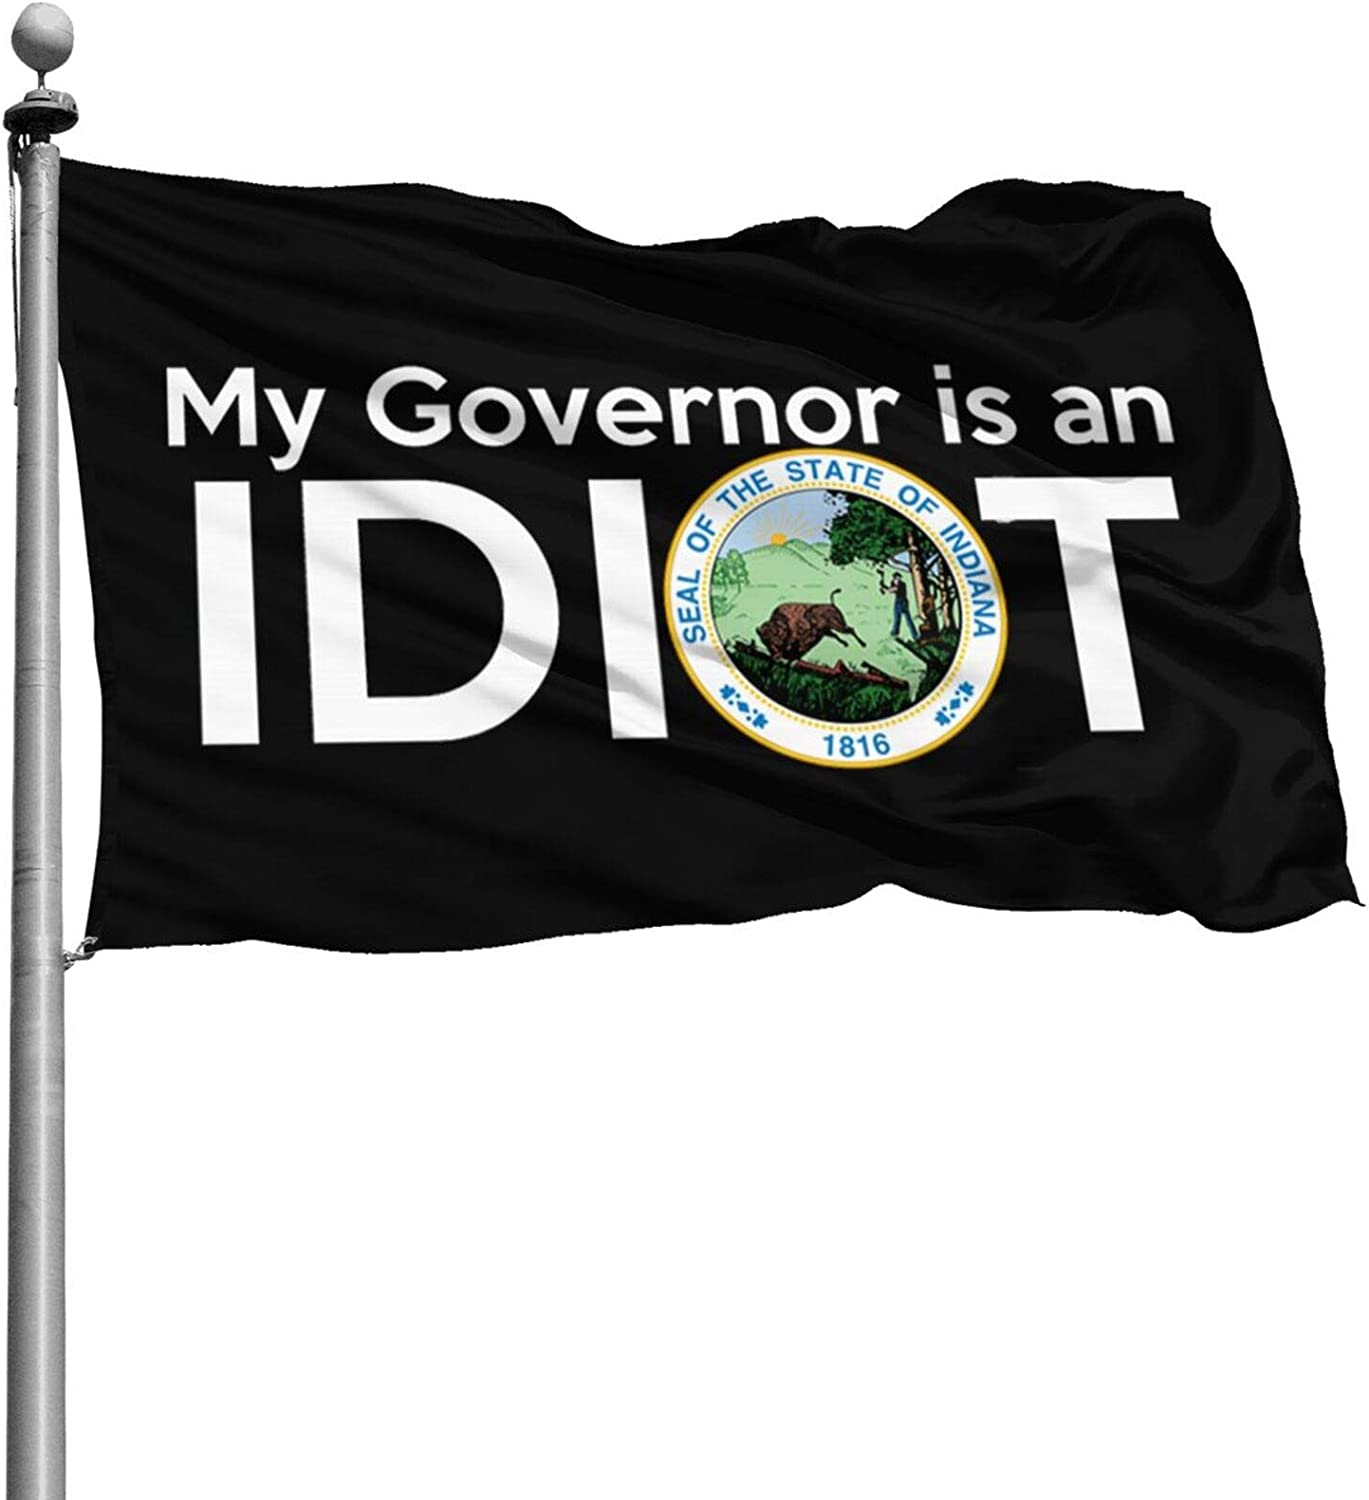 houqizhixiu My Governor is an Idiot - Indiana 4X6 USA Flag Foot Banner Flags Garden Flag Outdoor Flag Home House Flags,US Flag